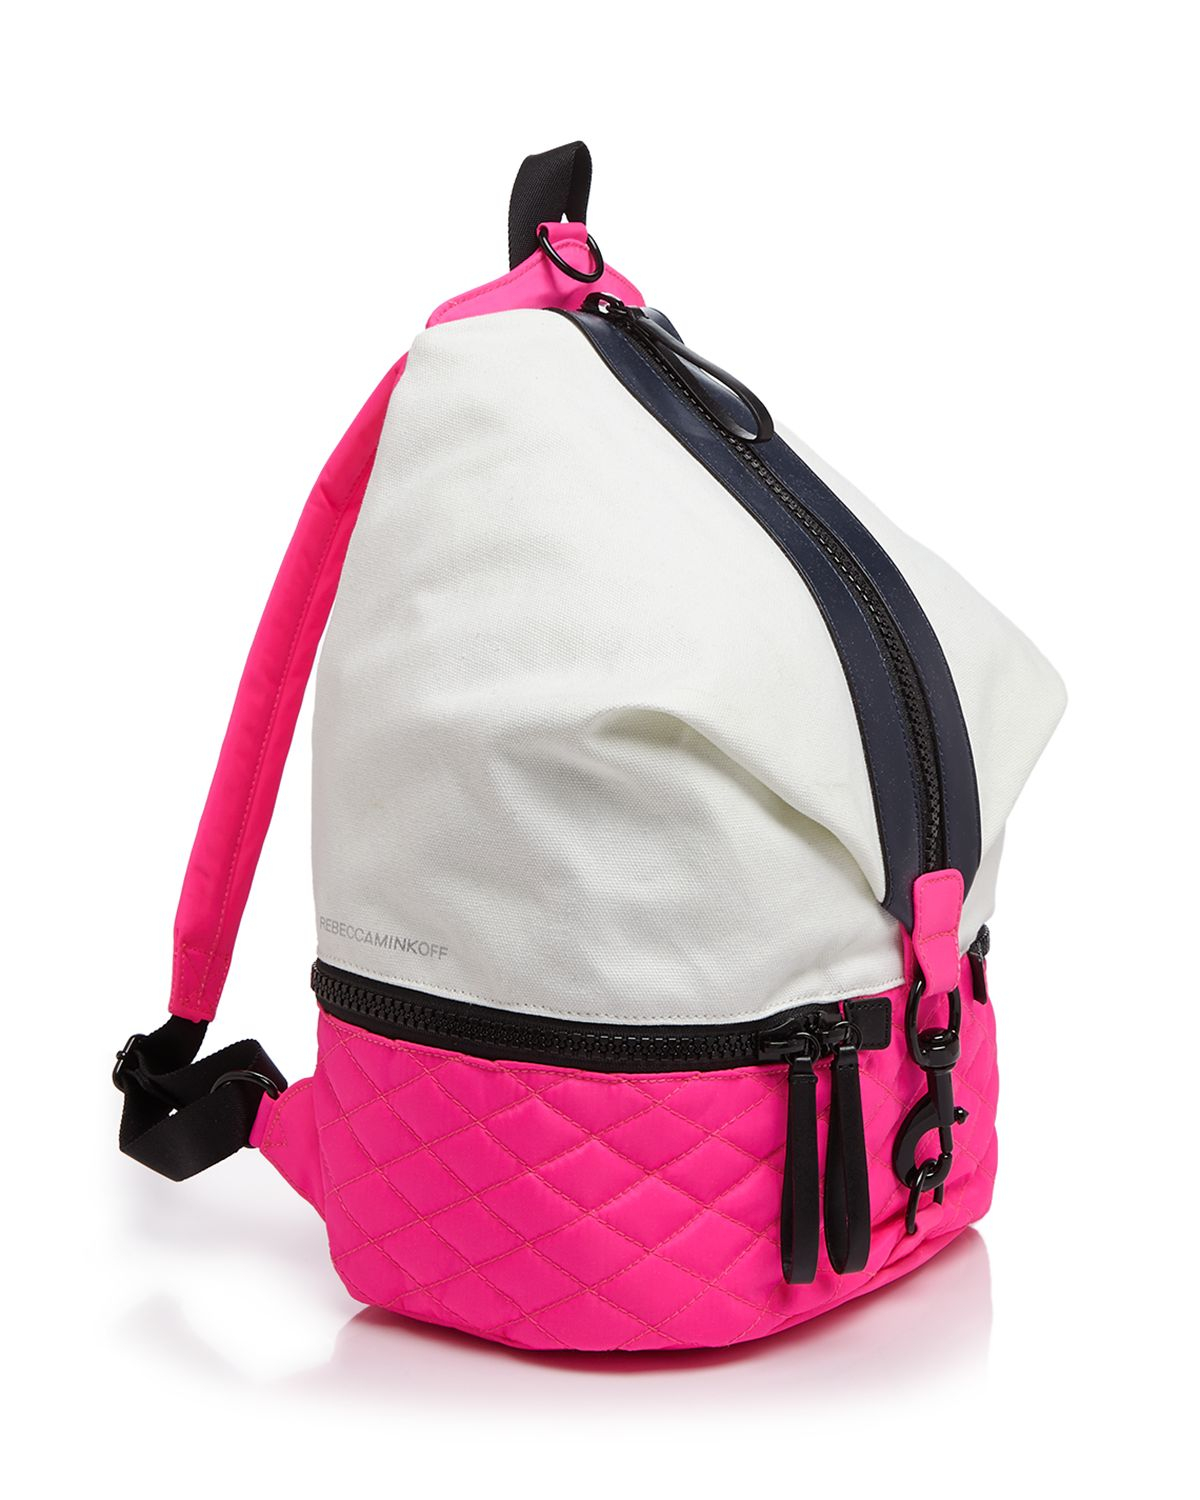 Rebecca Minkoff Backpack - Julian Sport